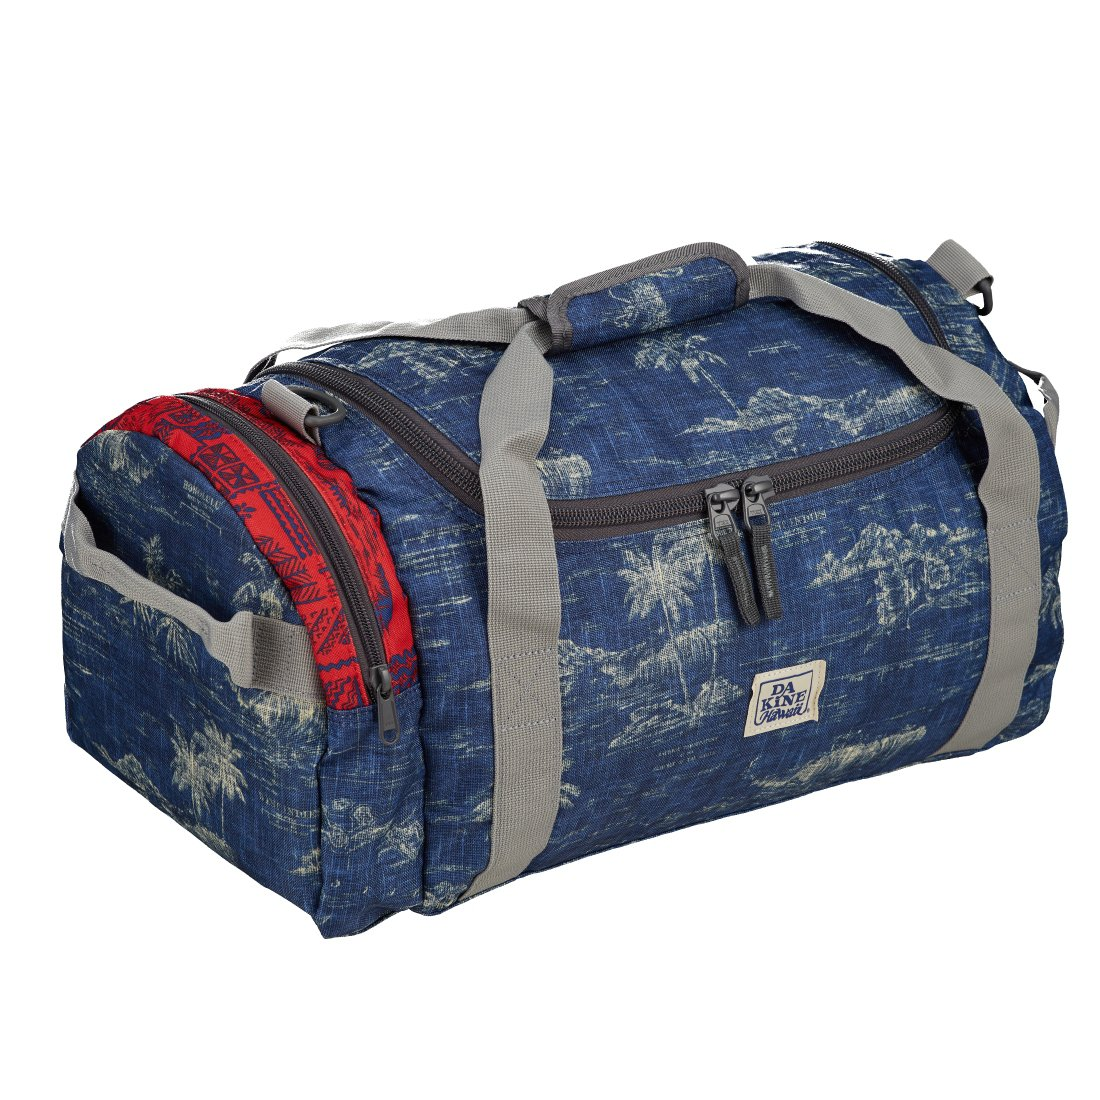 f611402b57630 Dakine Boys Packs EQ Bag Sporttasche 48 cm - tradewinds - koffer-direkt.de